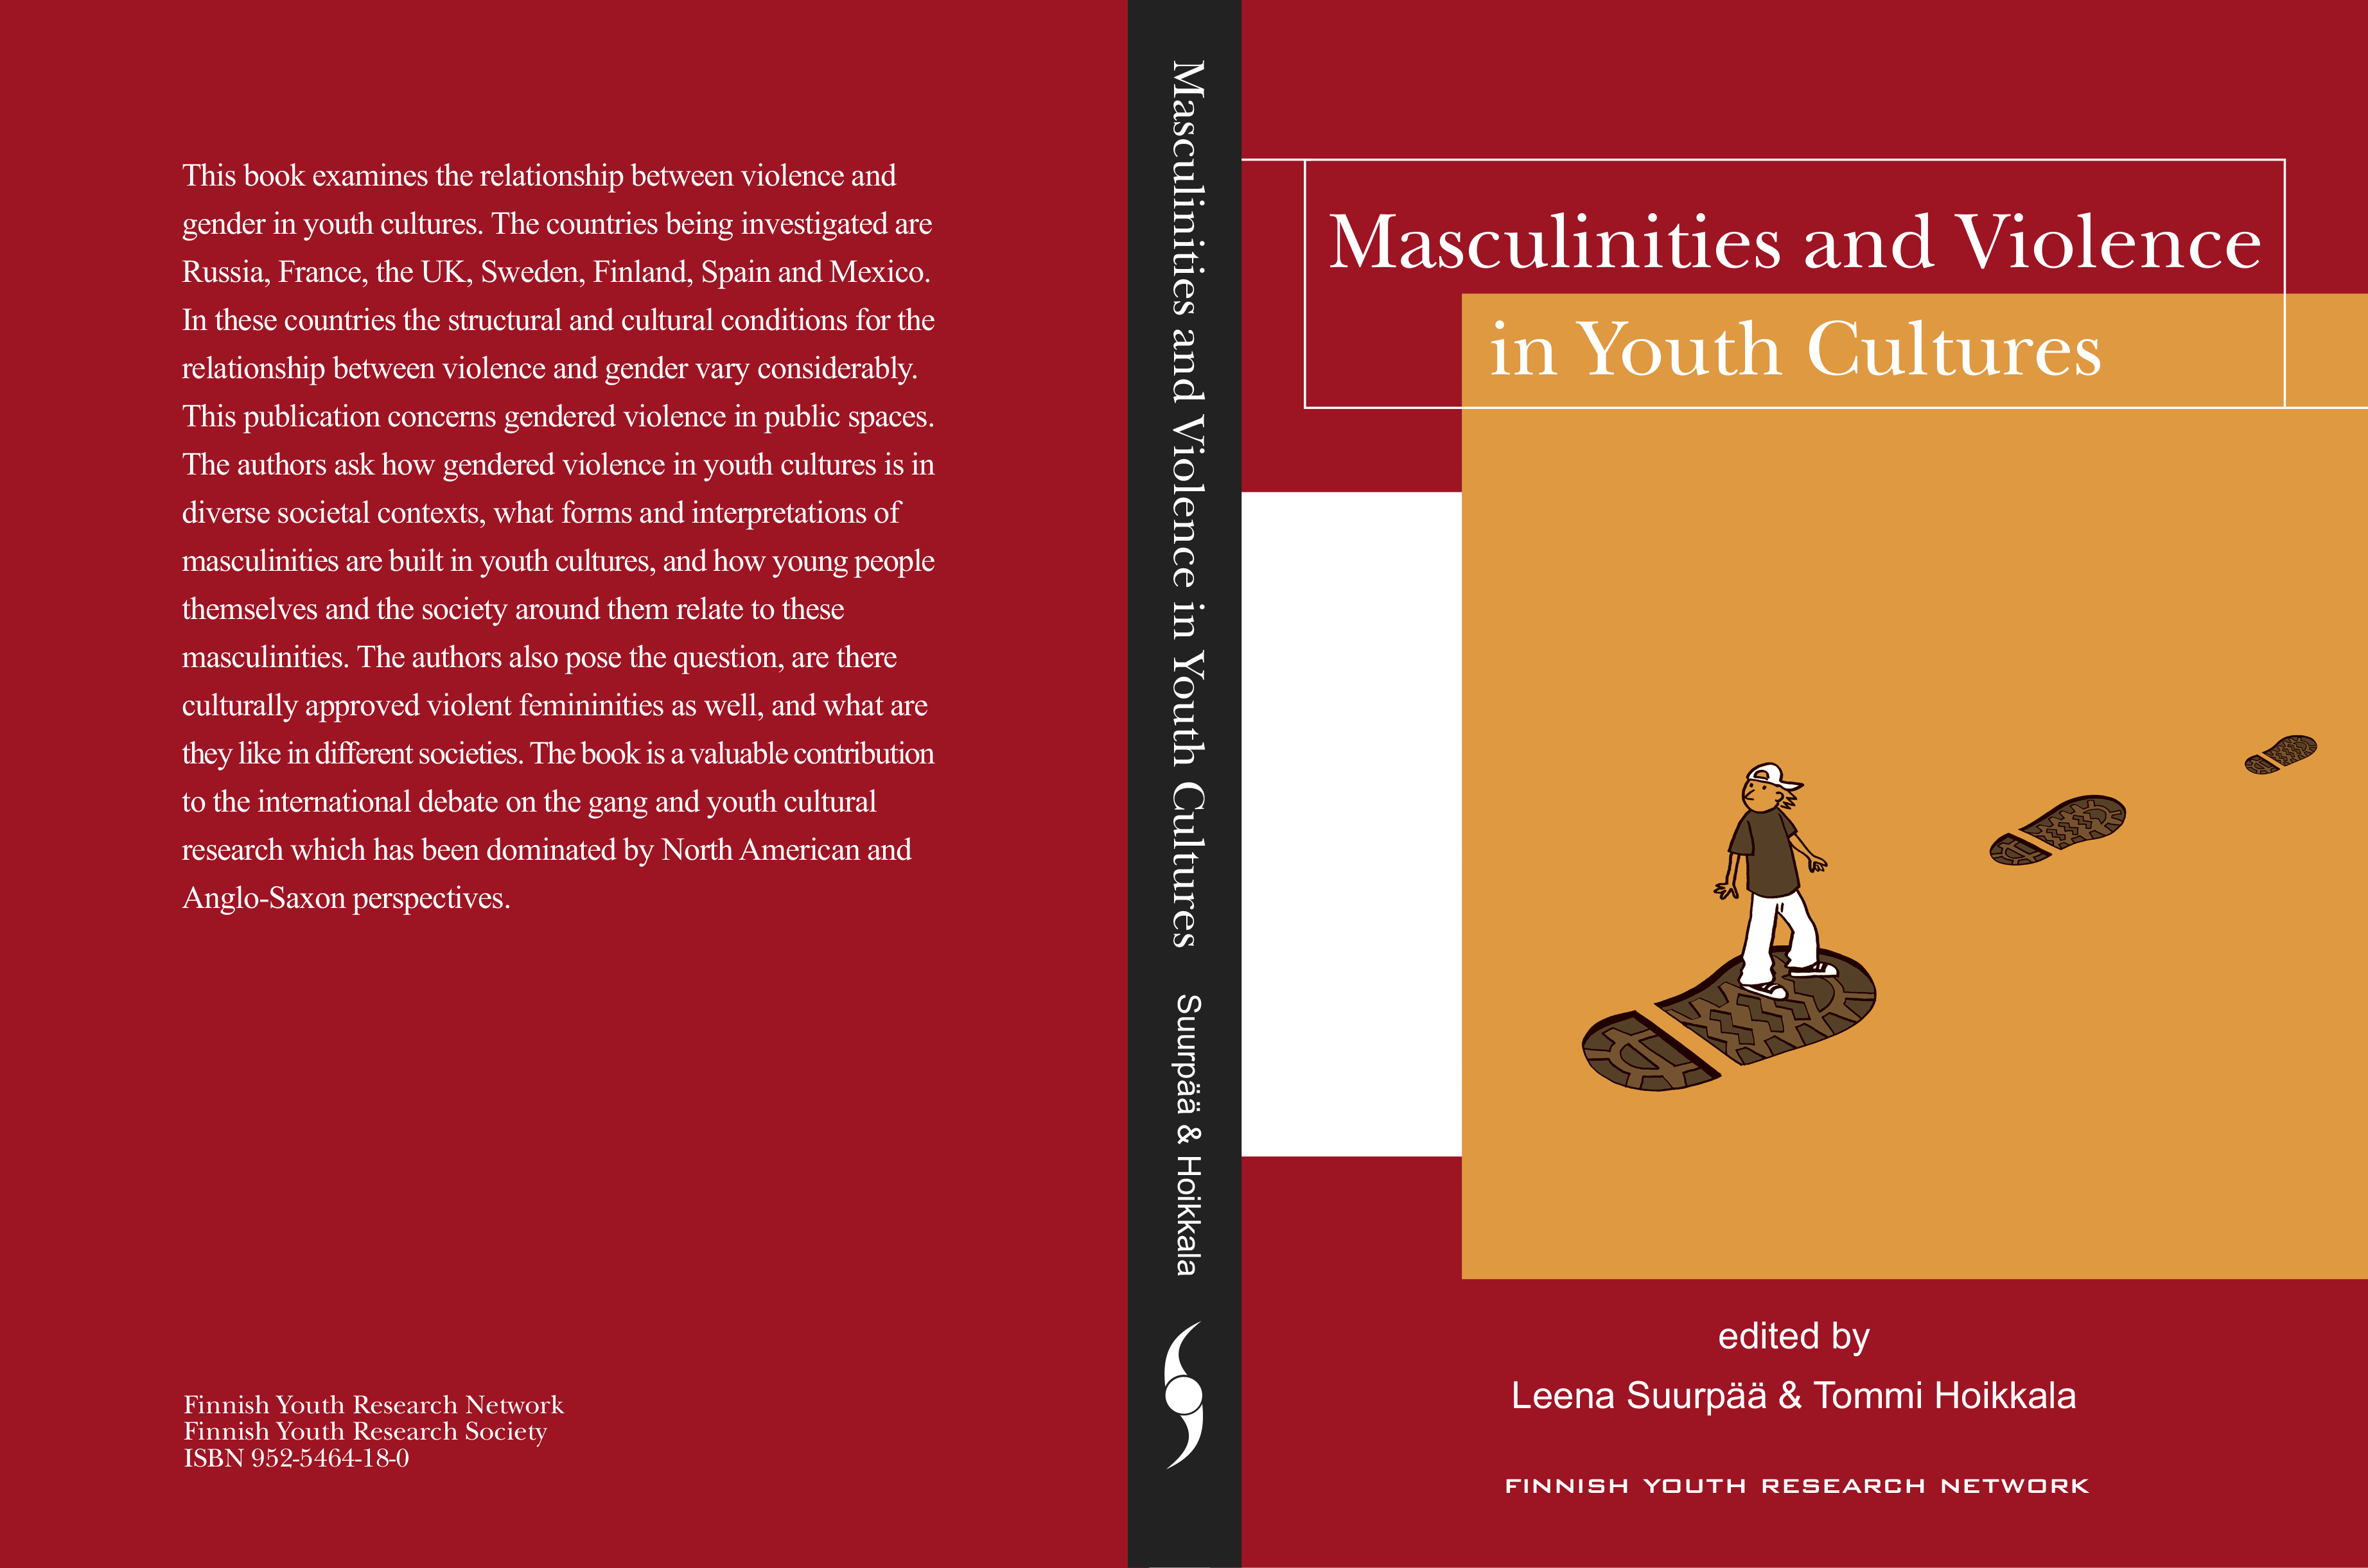 Masculinities and Violence in Youth Cultures